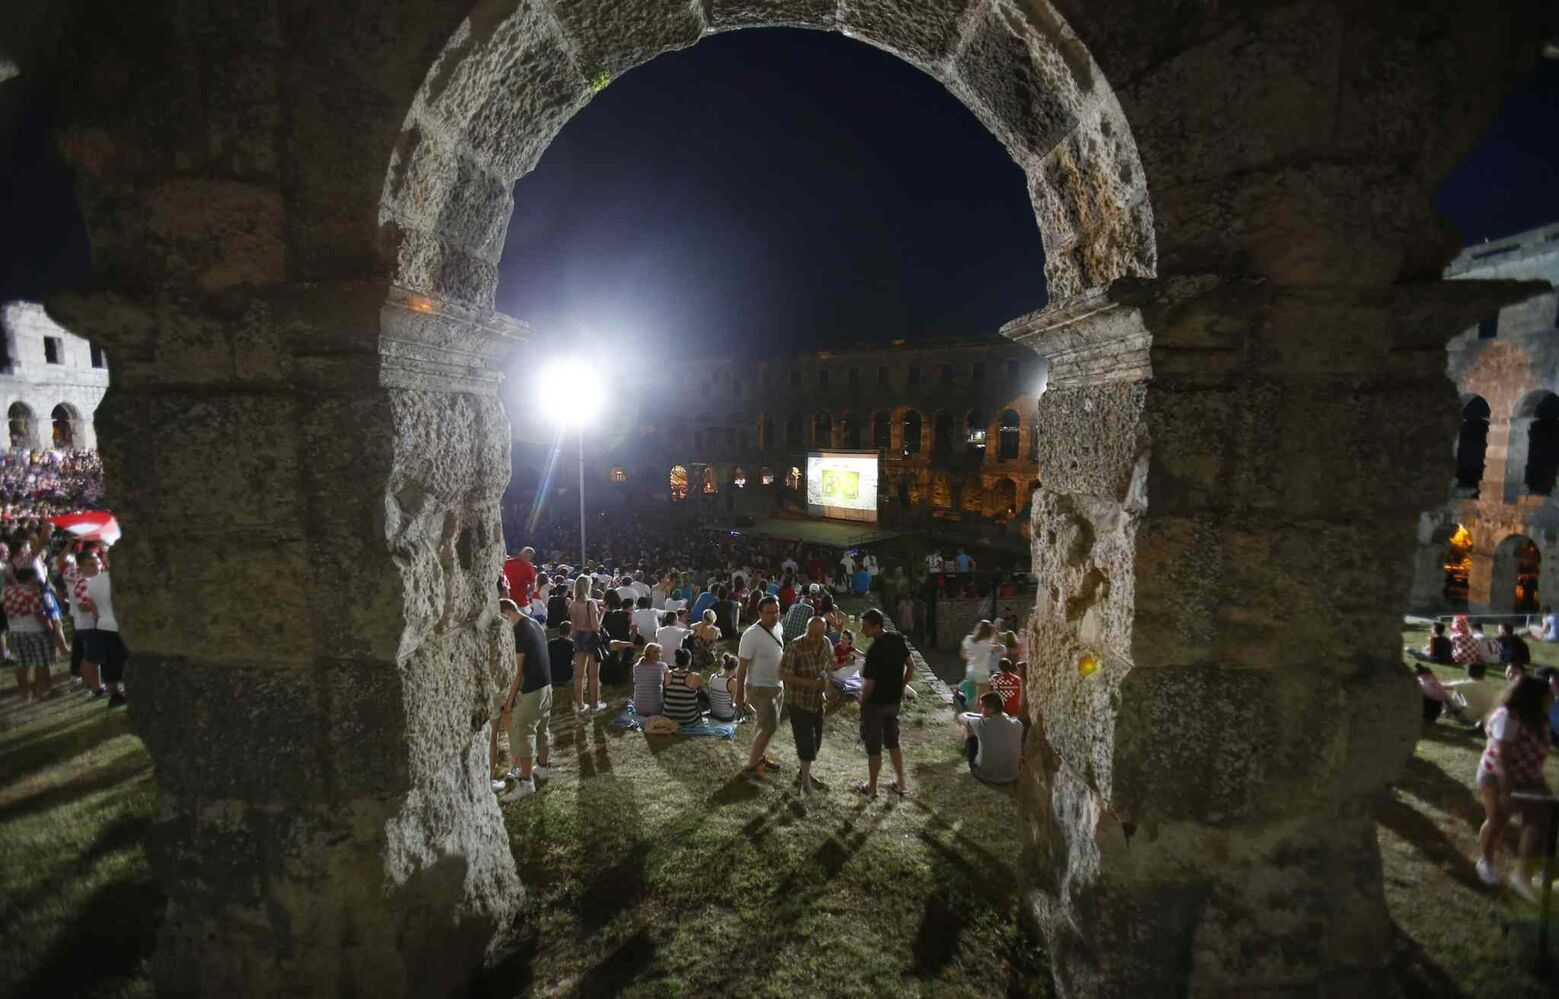 Croatian soccer fans watch the opening game of the World Cup between Brazil and Croatia in the Roman amphitheater in Pula, Croatia on Thursday. Pula's amphitheater is one of best preserved in the world.  (Darko Bandic / The Associated Press)